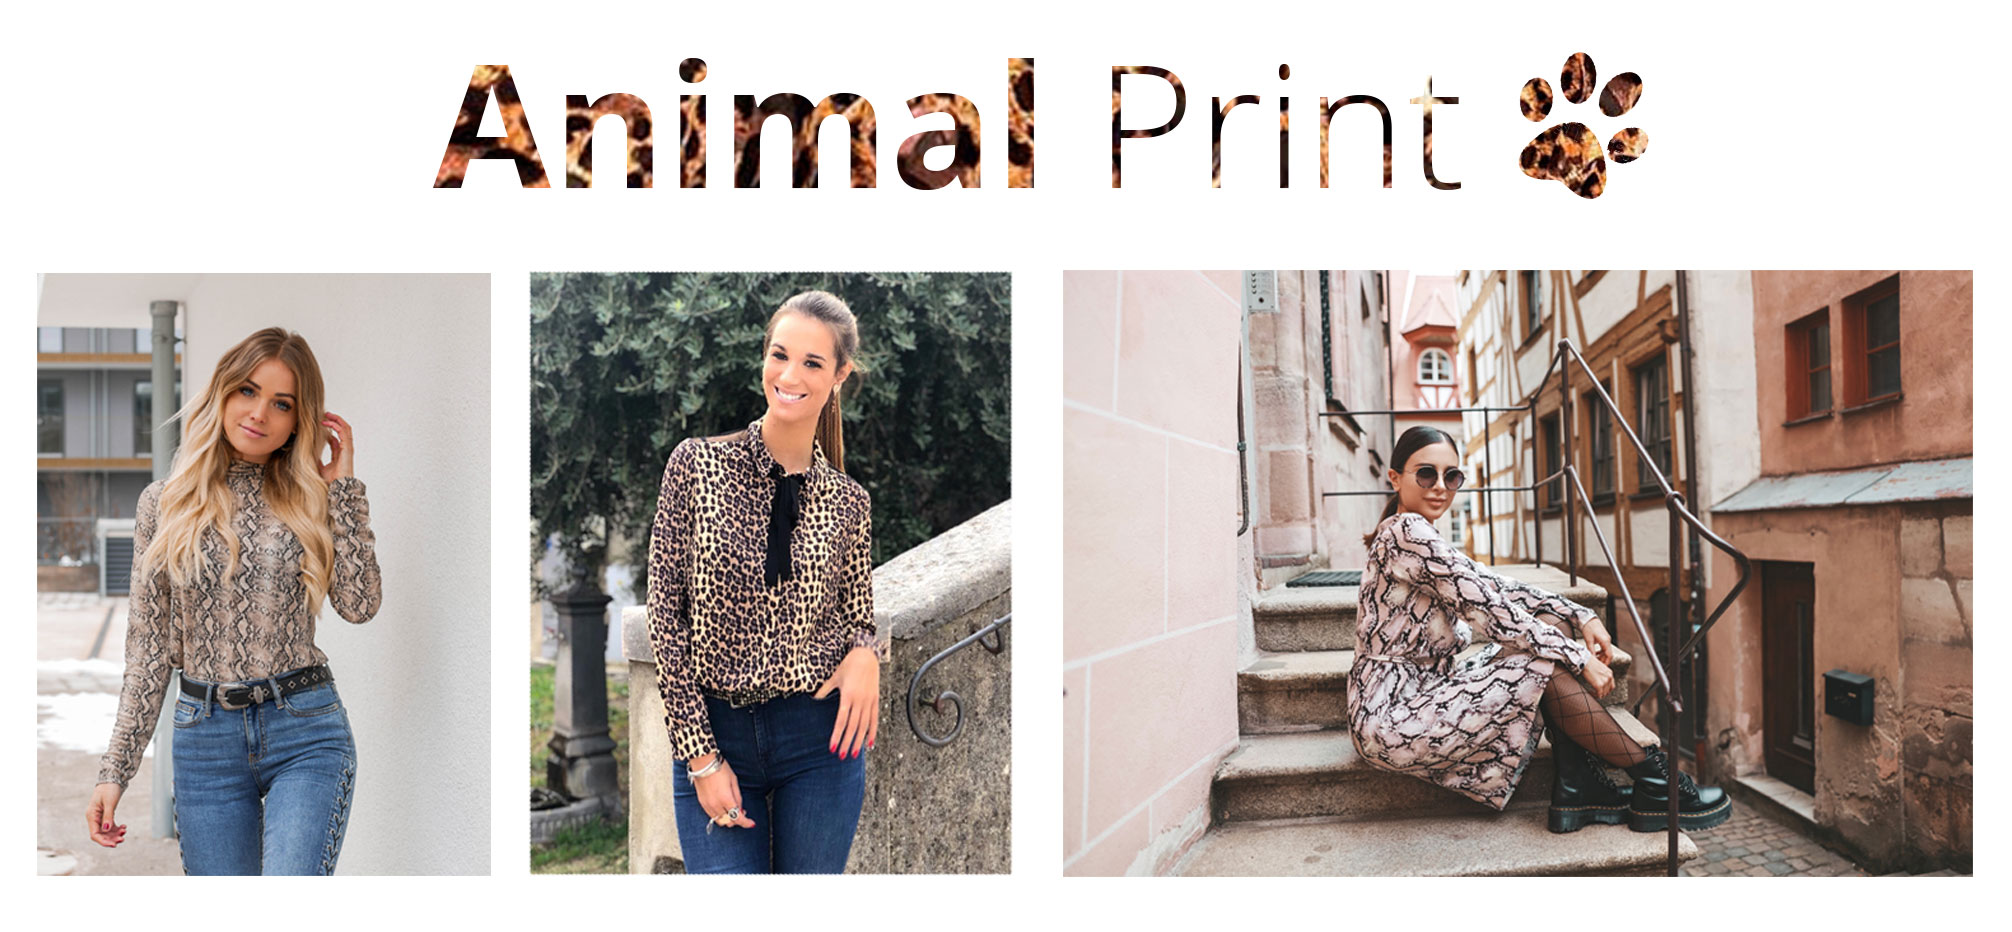 Animal Print Looks